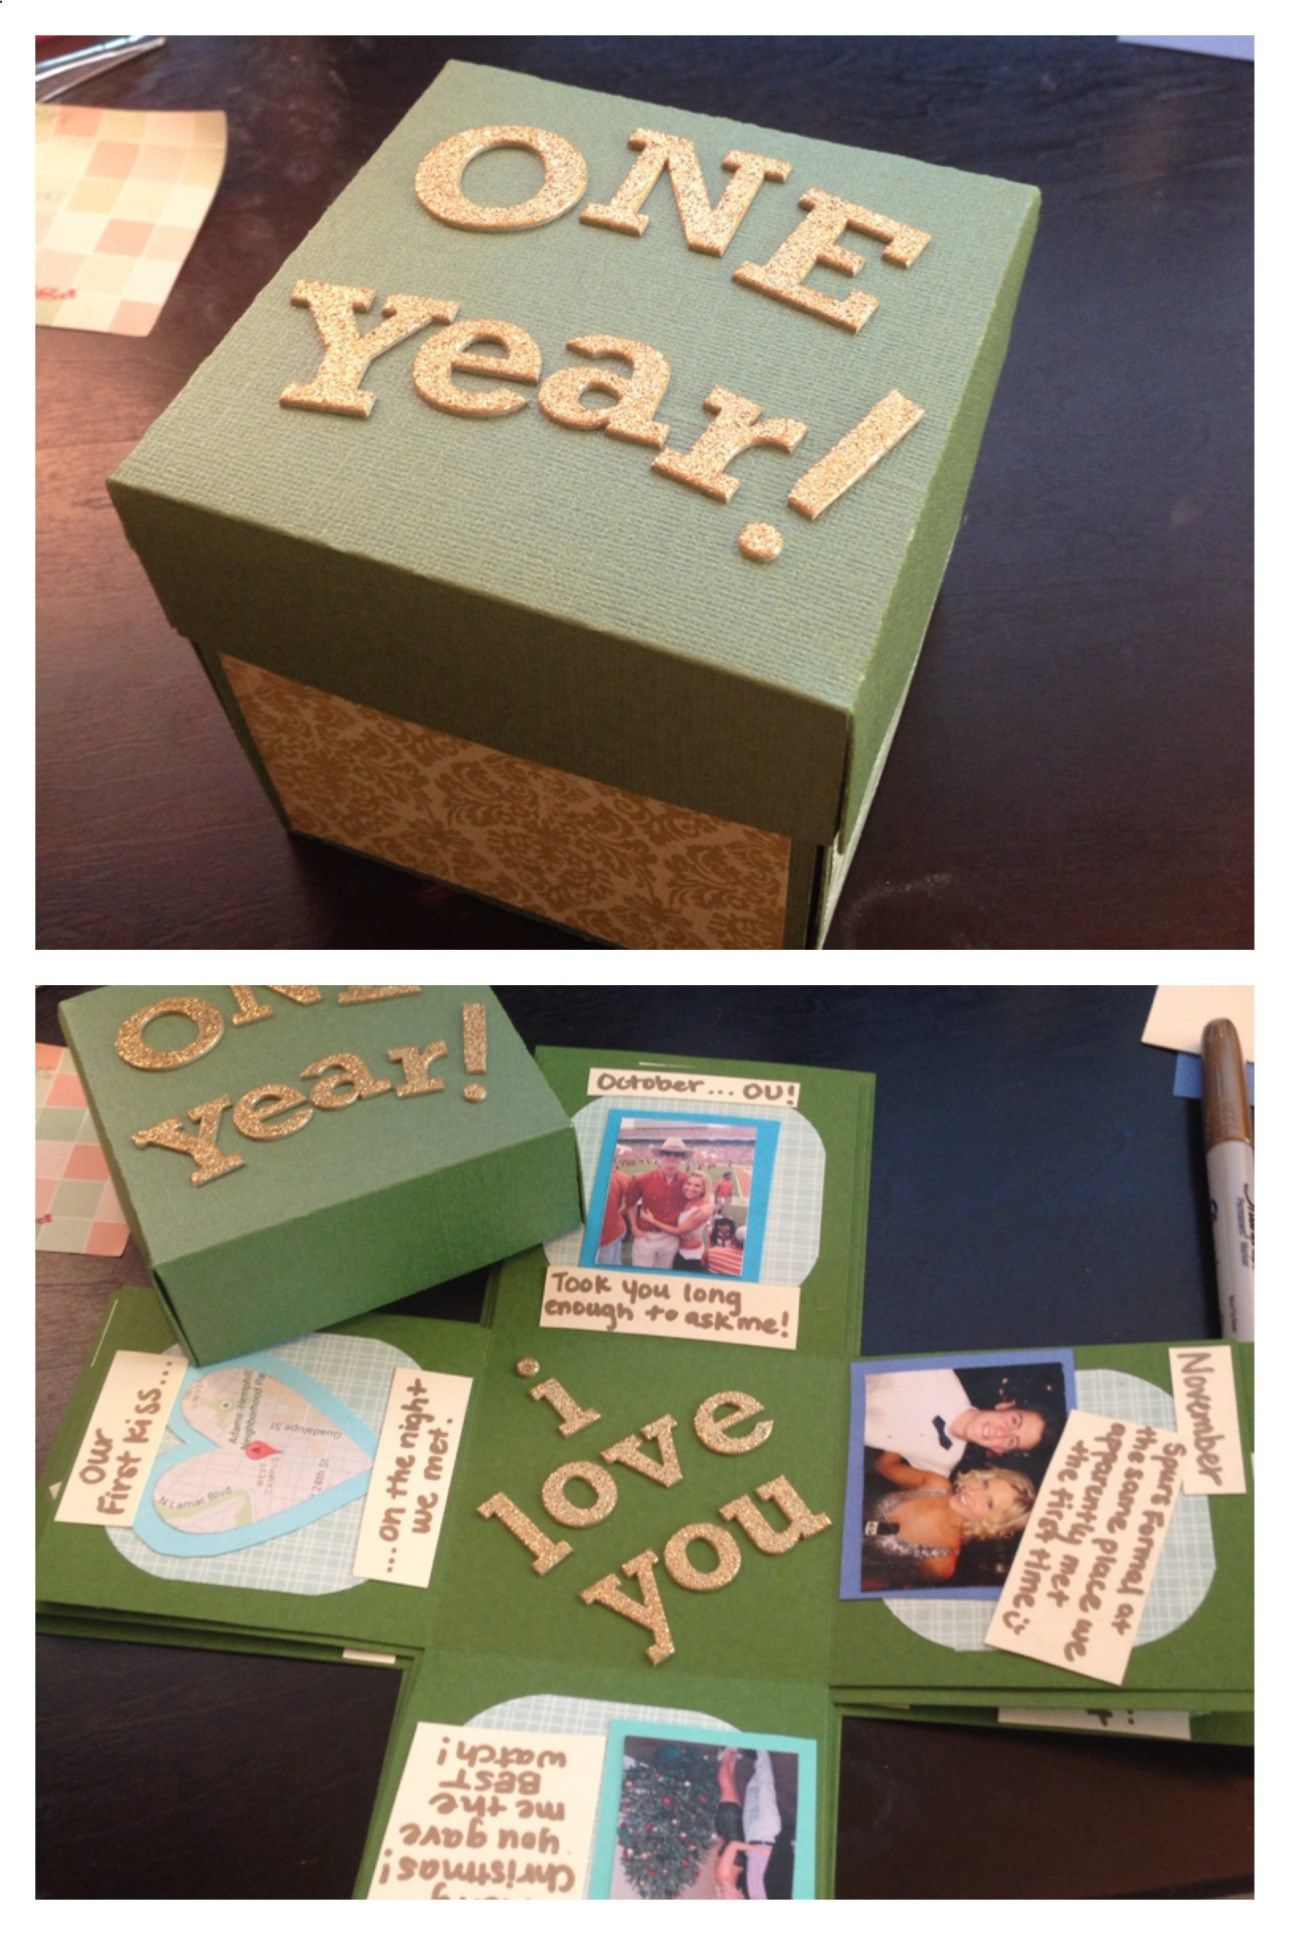 Did the exploding box for my one year anniversary with my